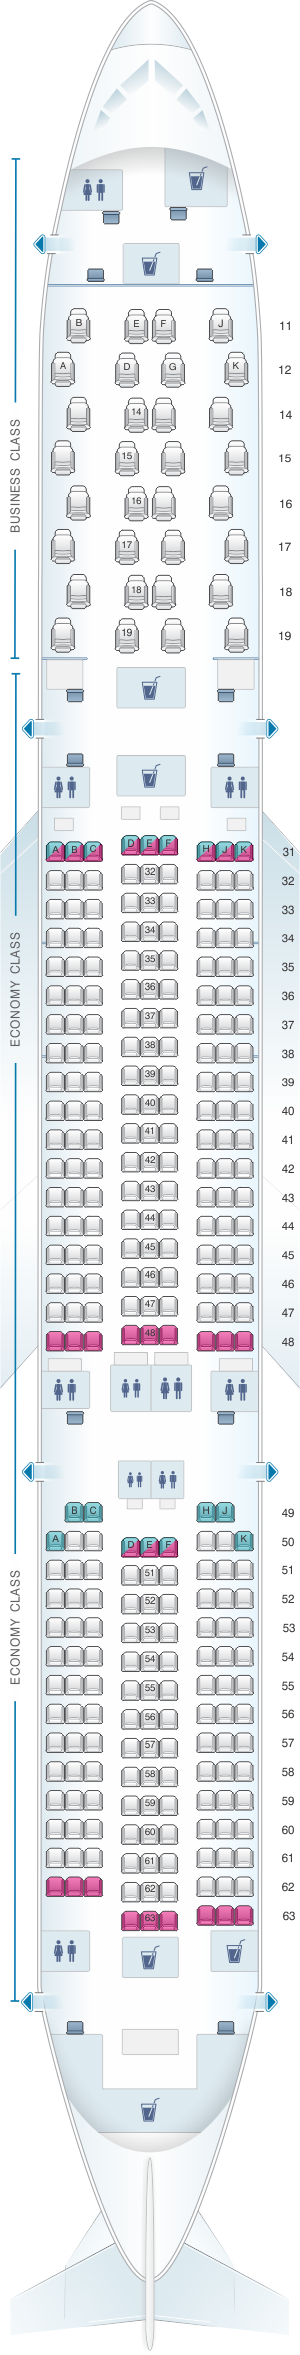 Seat map for Thai Airways International Airbus A350 900